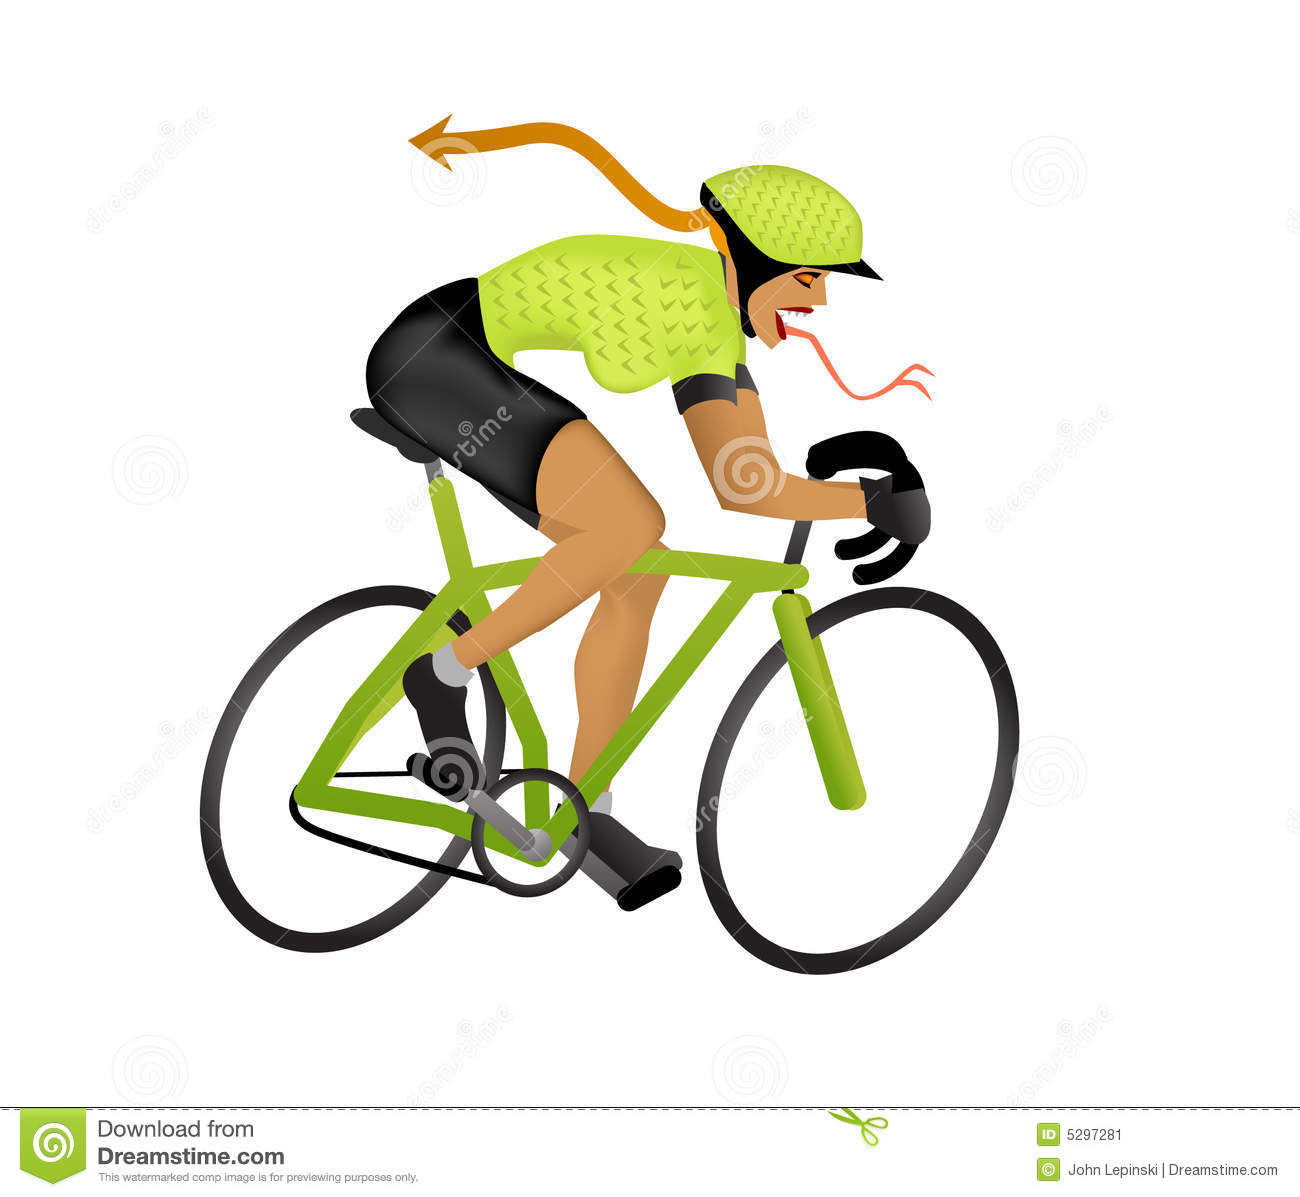 Illustration de girlzilla de cycliste image stock image - Cycliste dessin ...